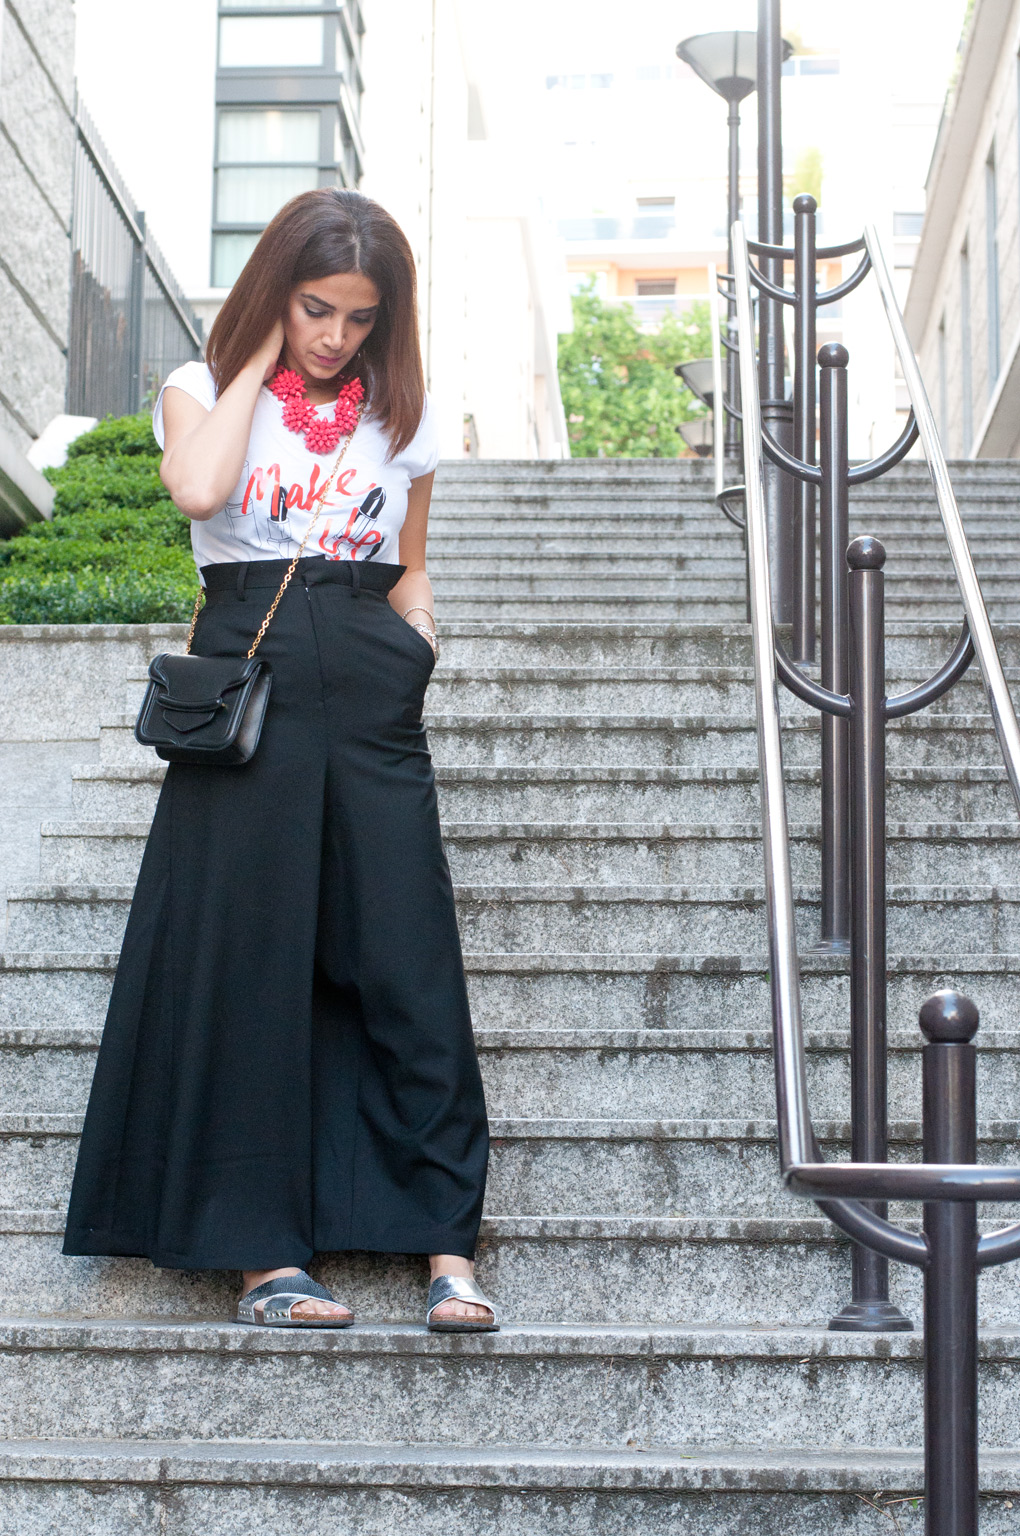 Lyla_Loves_Fashion_Junya_Watanabe_Trousers_Stella_McCartney_Tshirt_5927